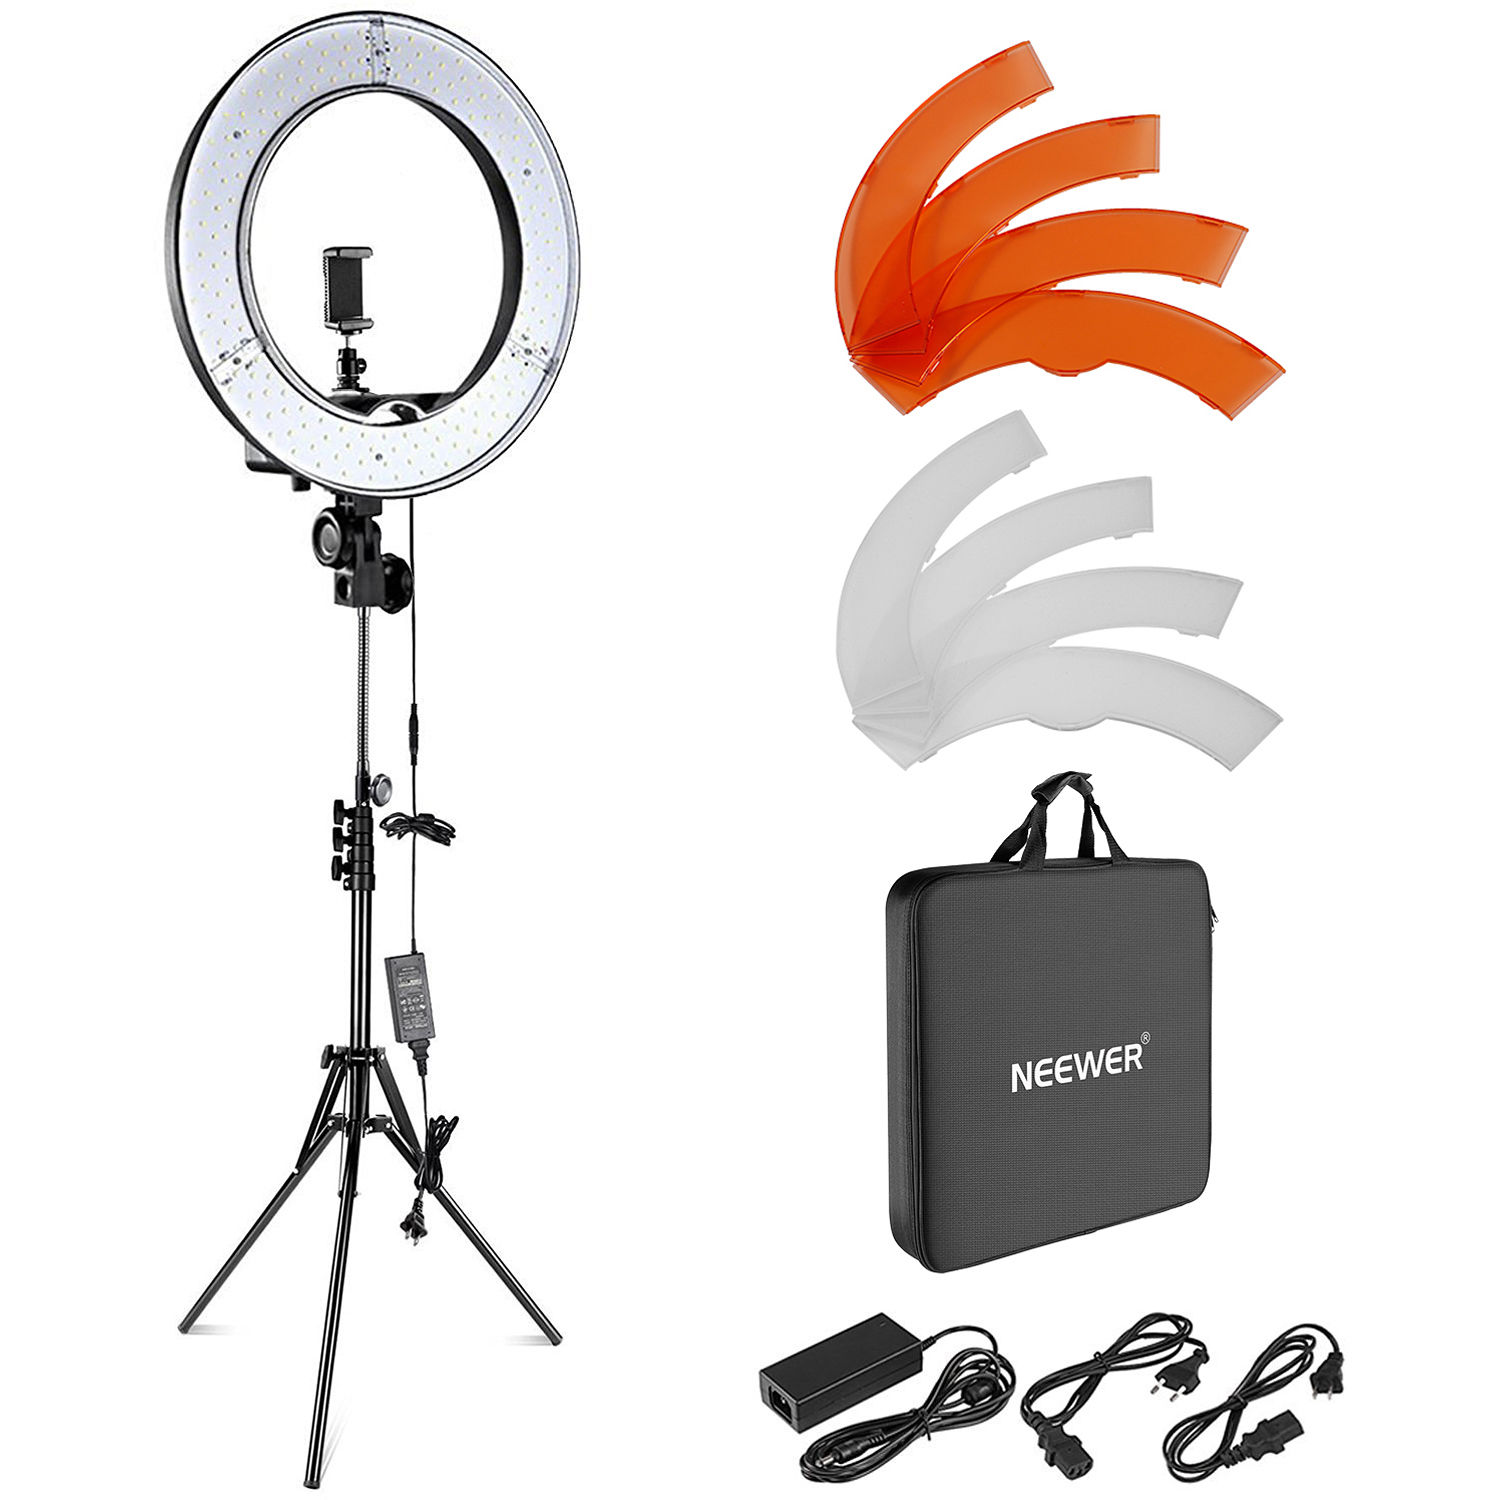 Ring Light Stand Ireland: Neewer LED Ring Light With Stand And Accessories Kit 10088612